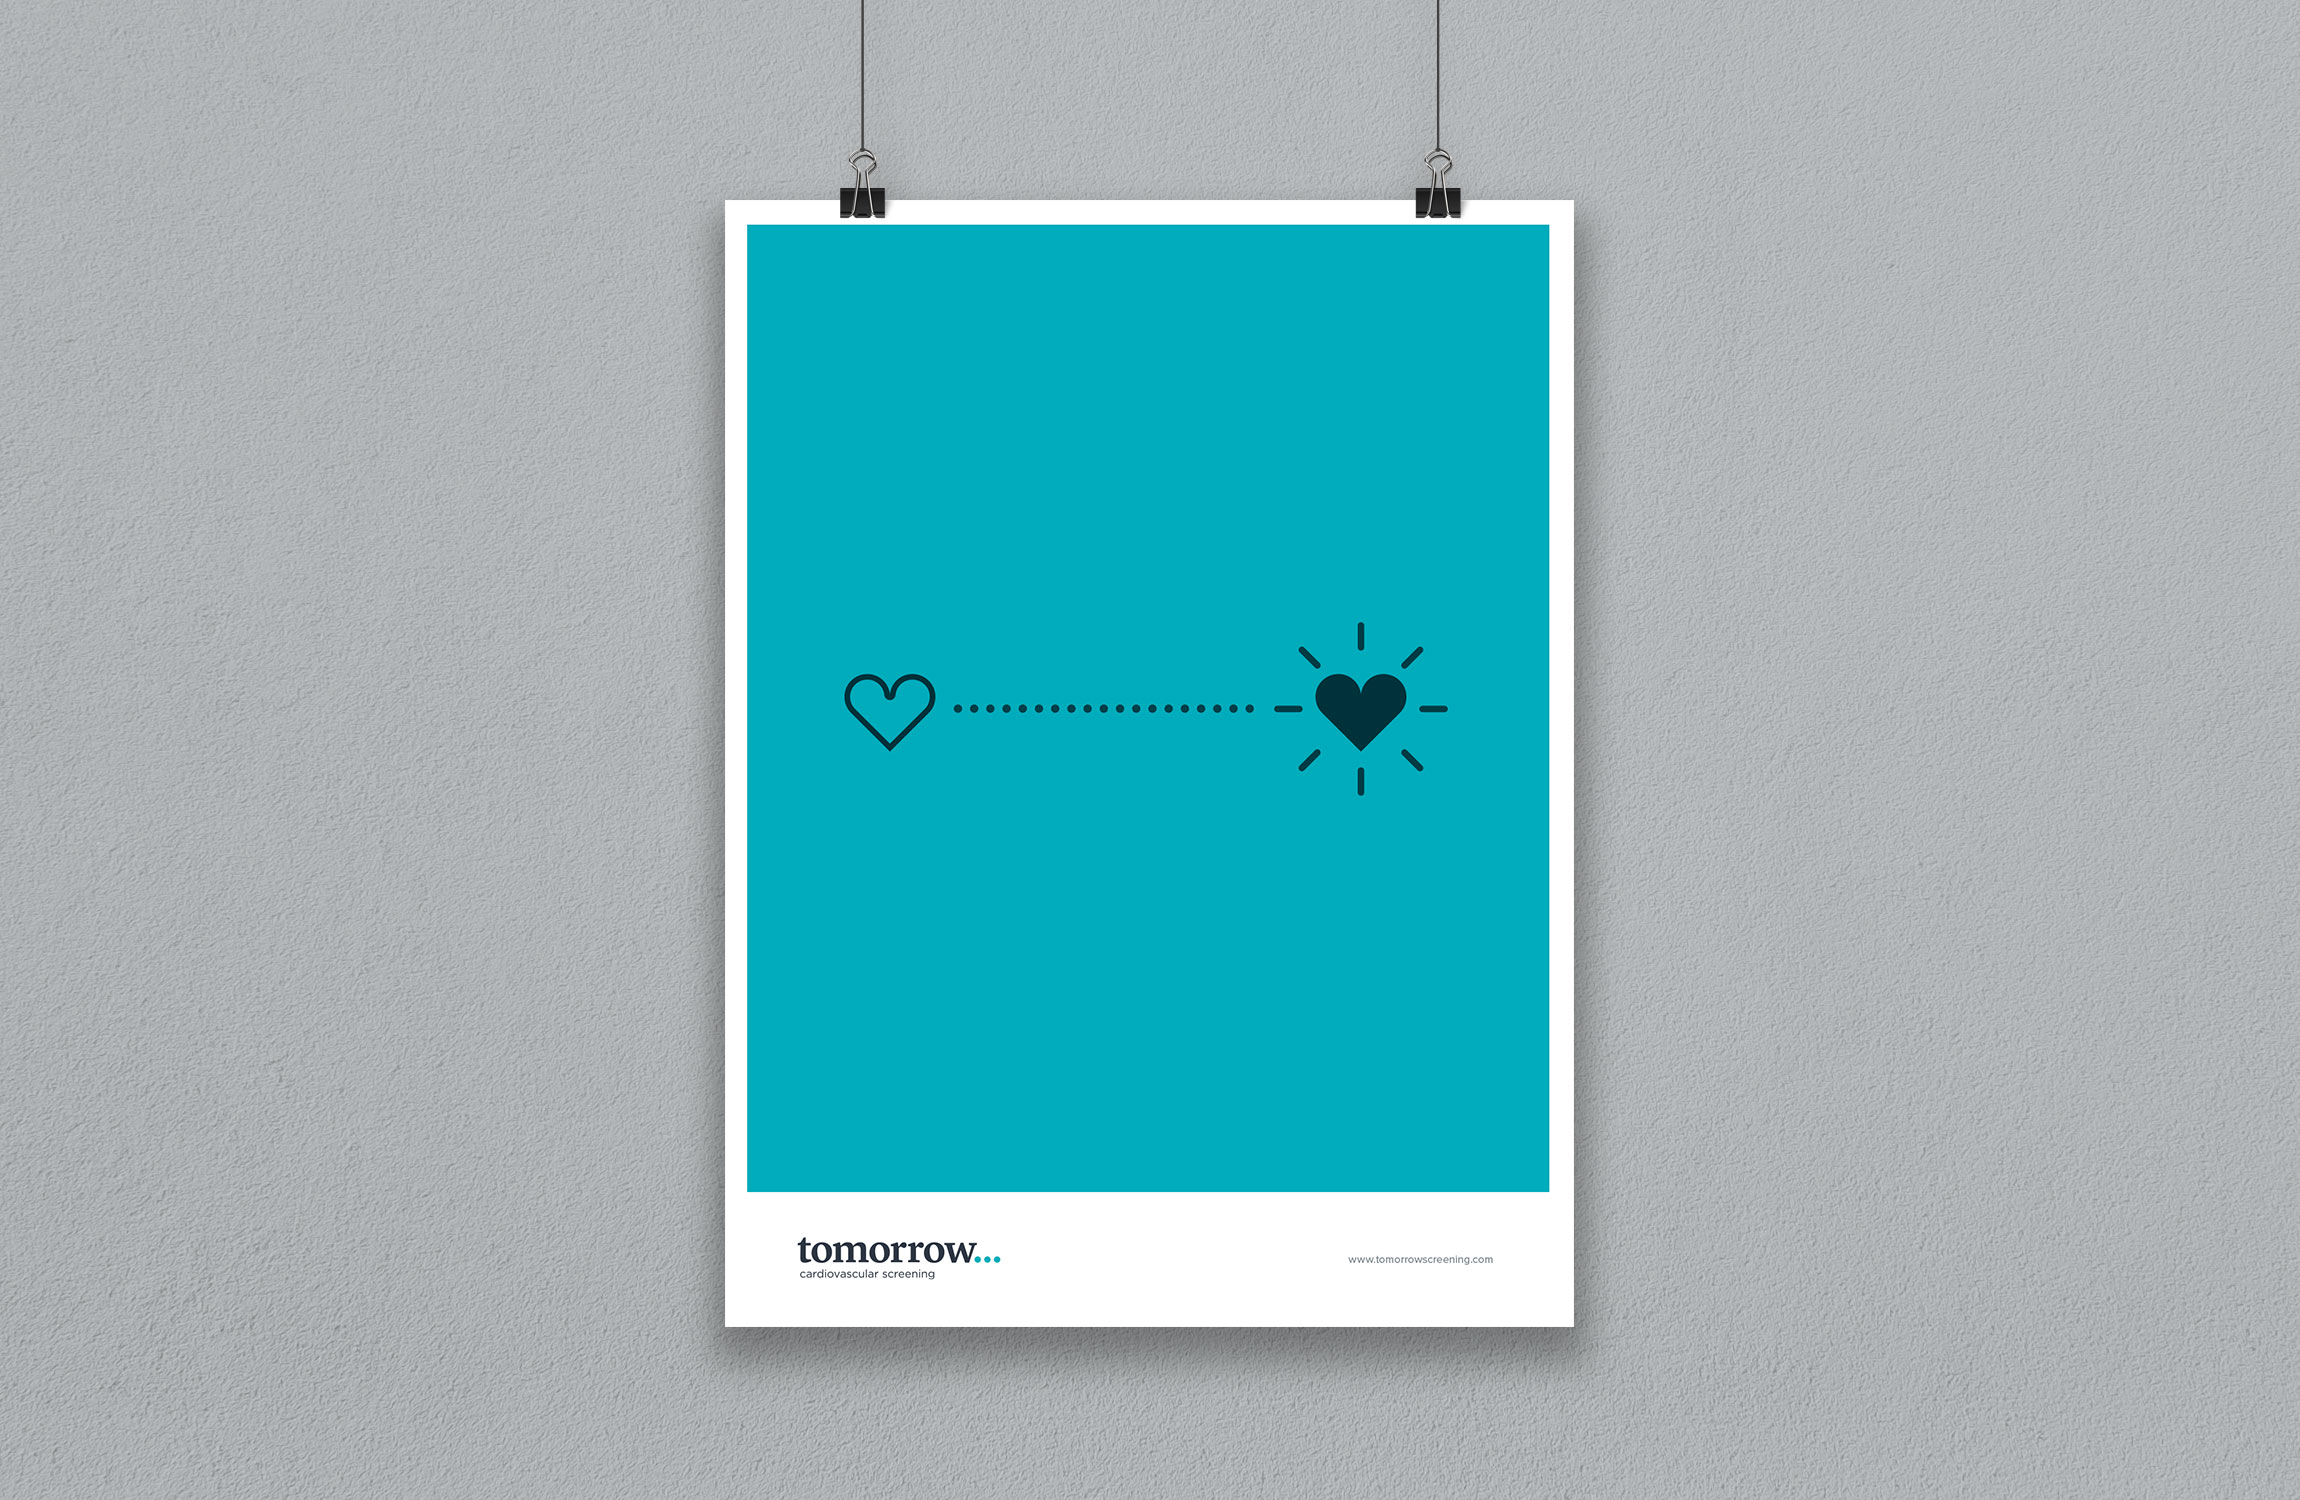 Tomorrow Screening heart transformation poster – design by Ian Whalley